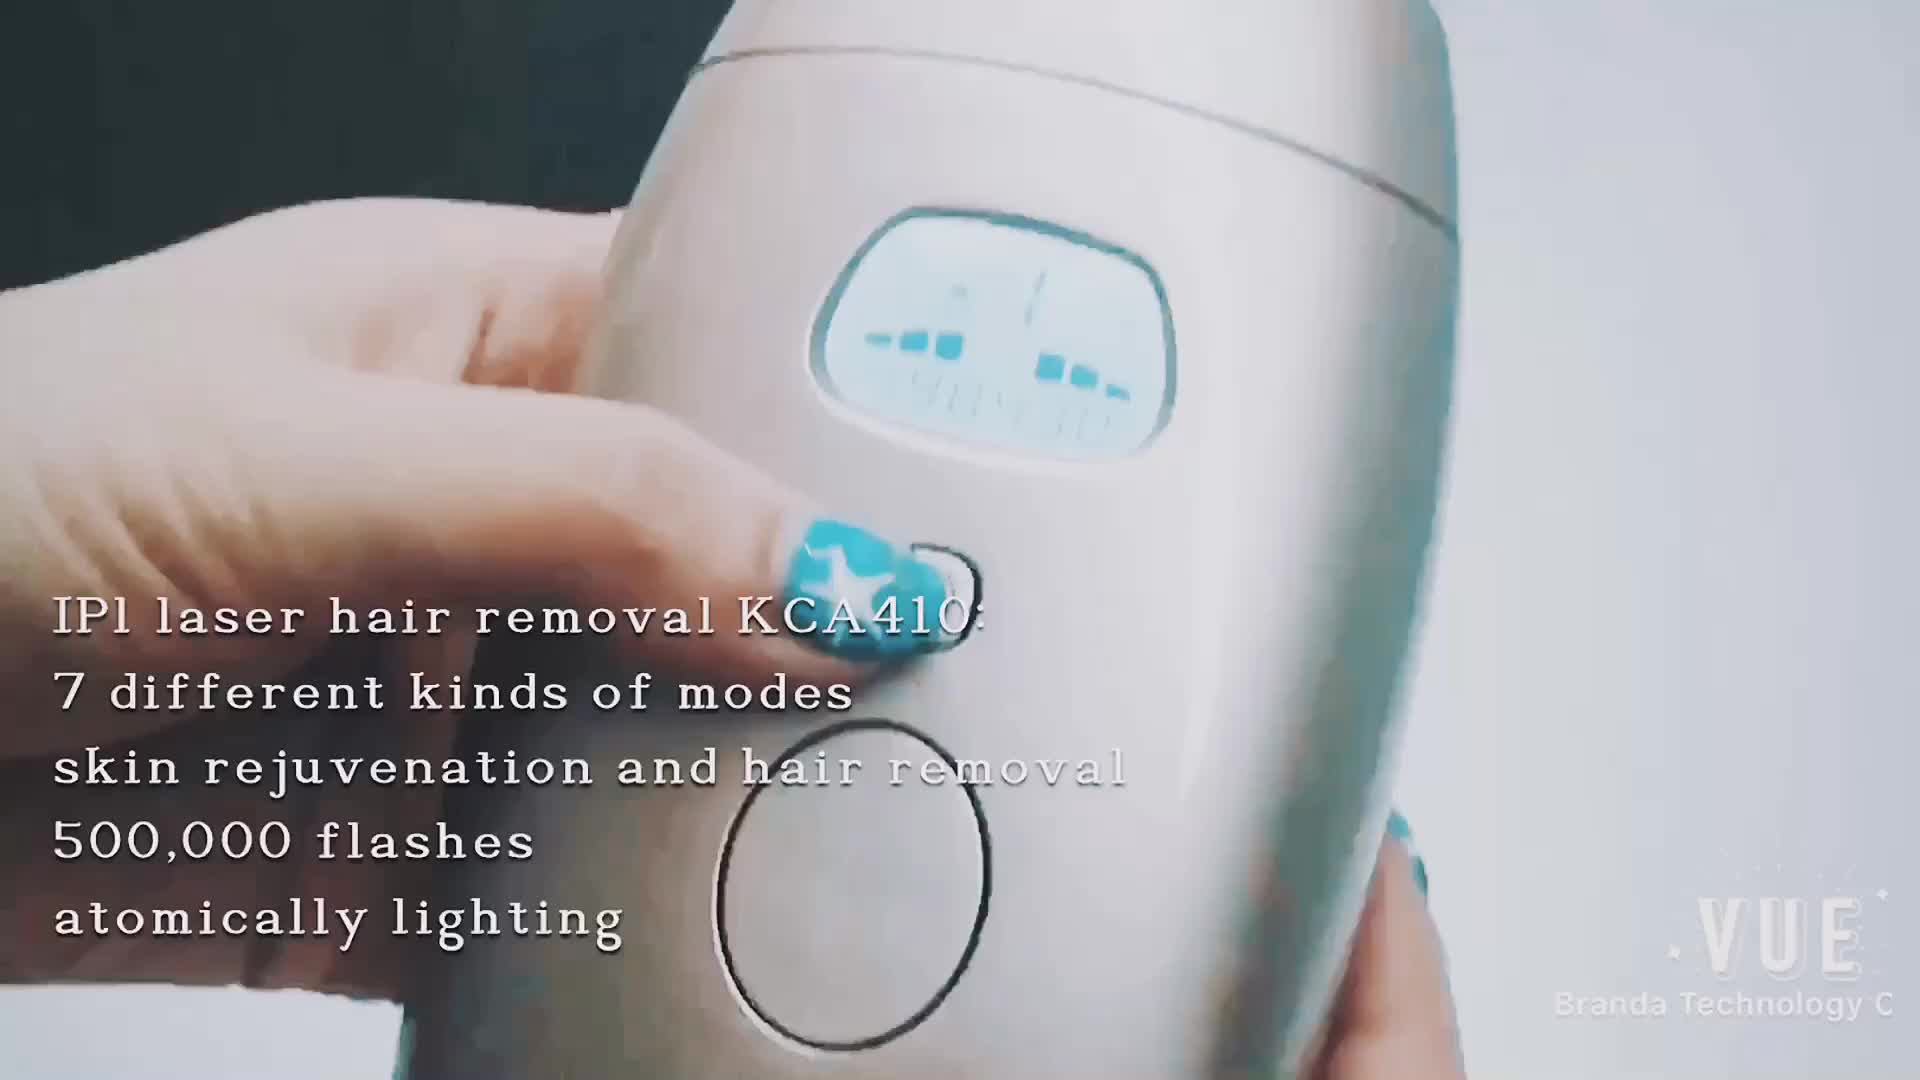 hair cutting machine prices Handheld Portable Laser Permanent IPL Laser Hair Removal Device